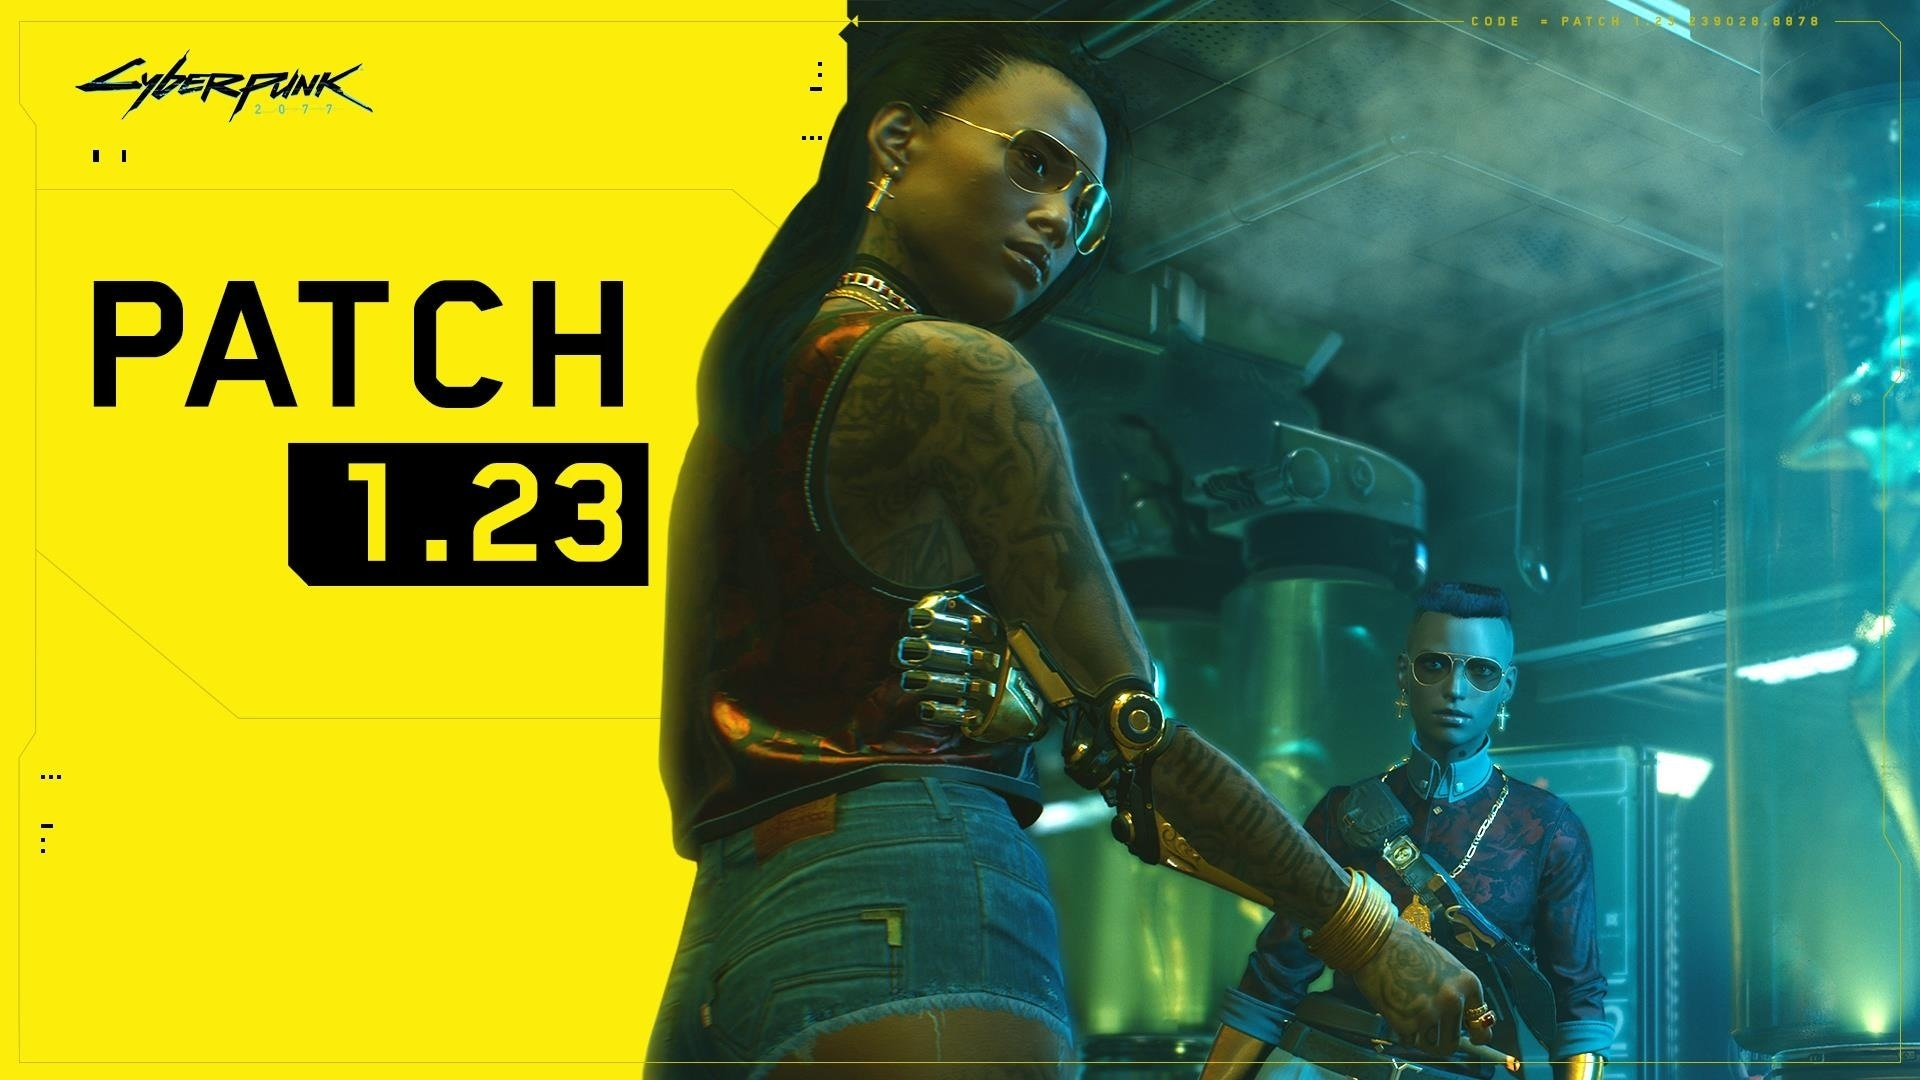 cyberpunk 2077 patch 1.23 available now